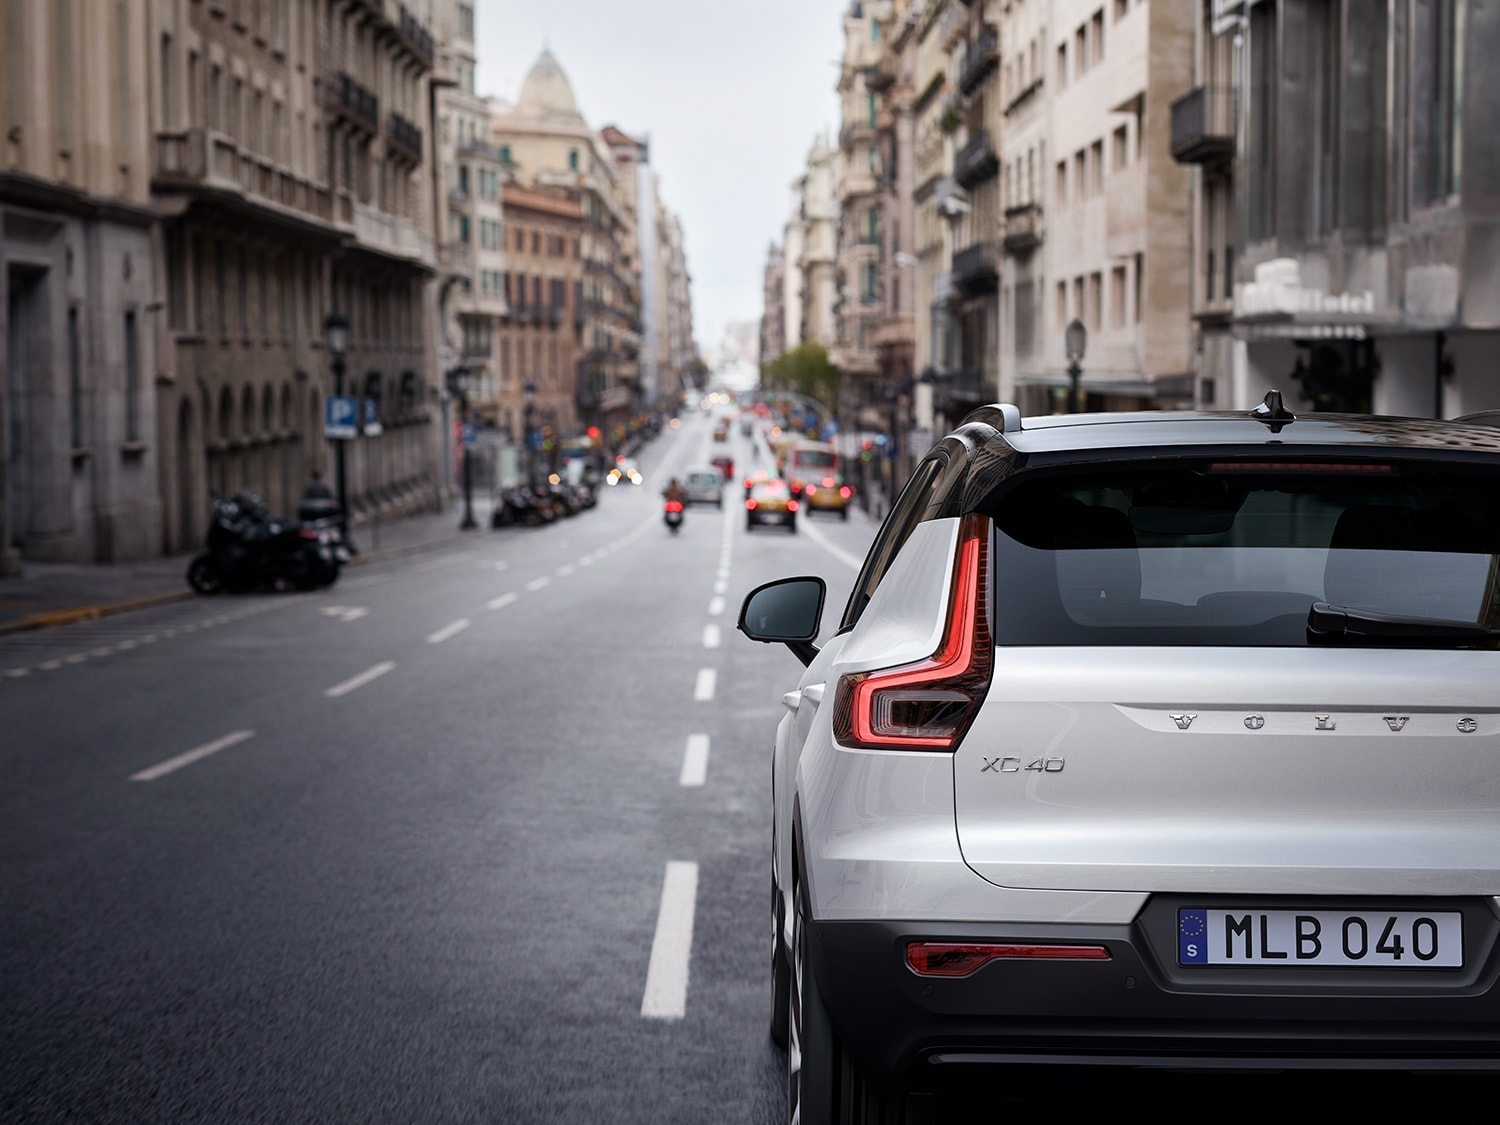 Rear view of a Volvo XC40 driving in the city